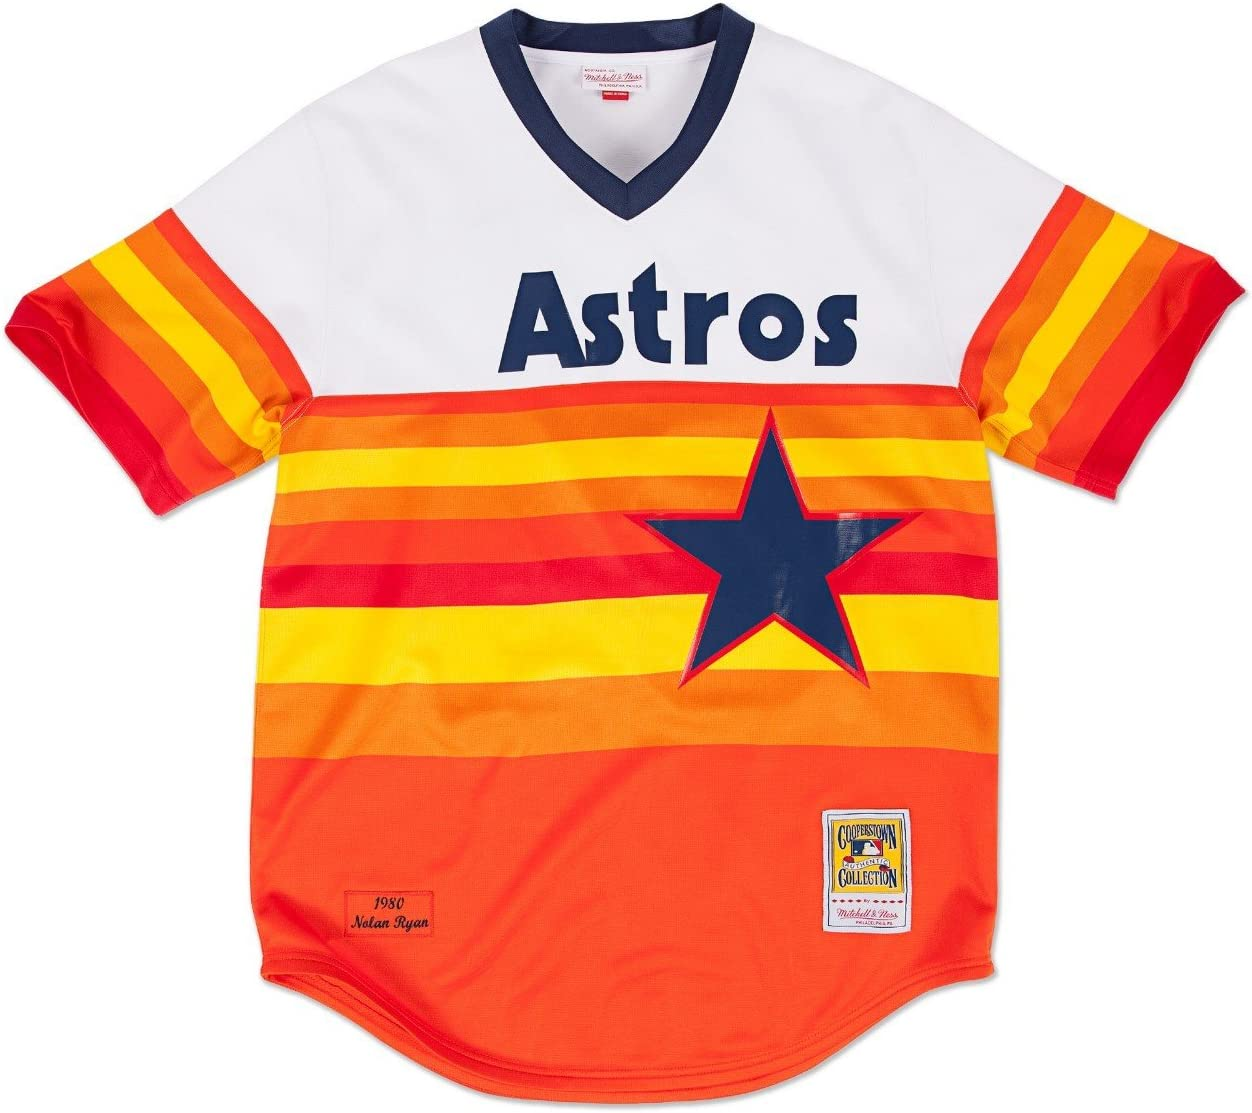 Nolan Ryan Houston Astros Mitchell & Ness Authentic MLB 1980 Sudadera Jersey Camiseta, xx-large: Amazon.es: Deportes y aire libre